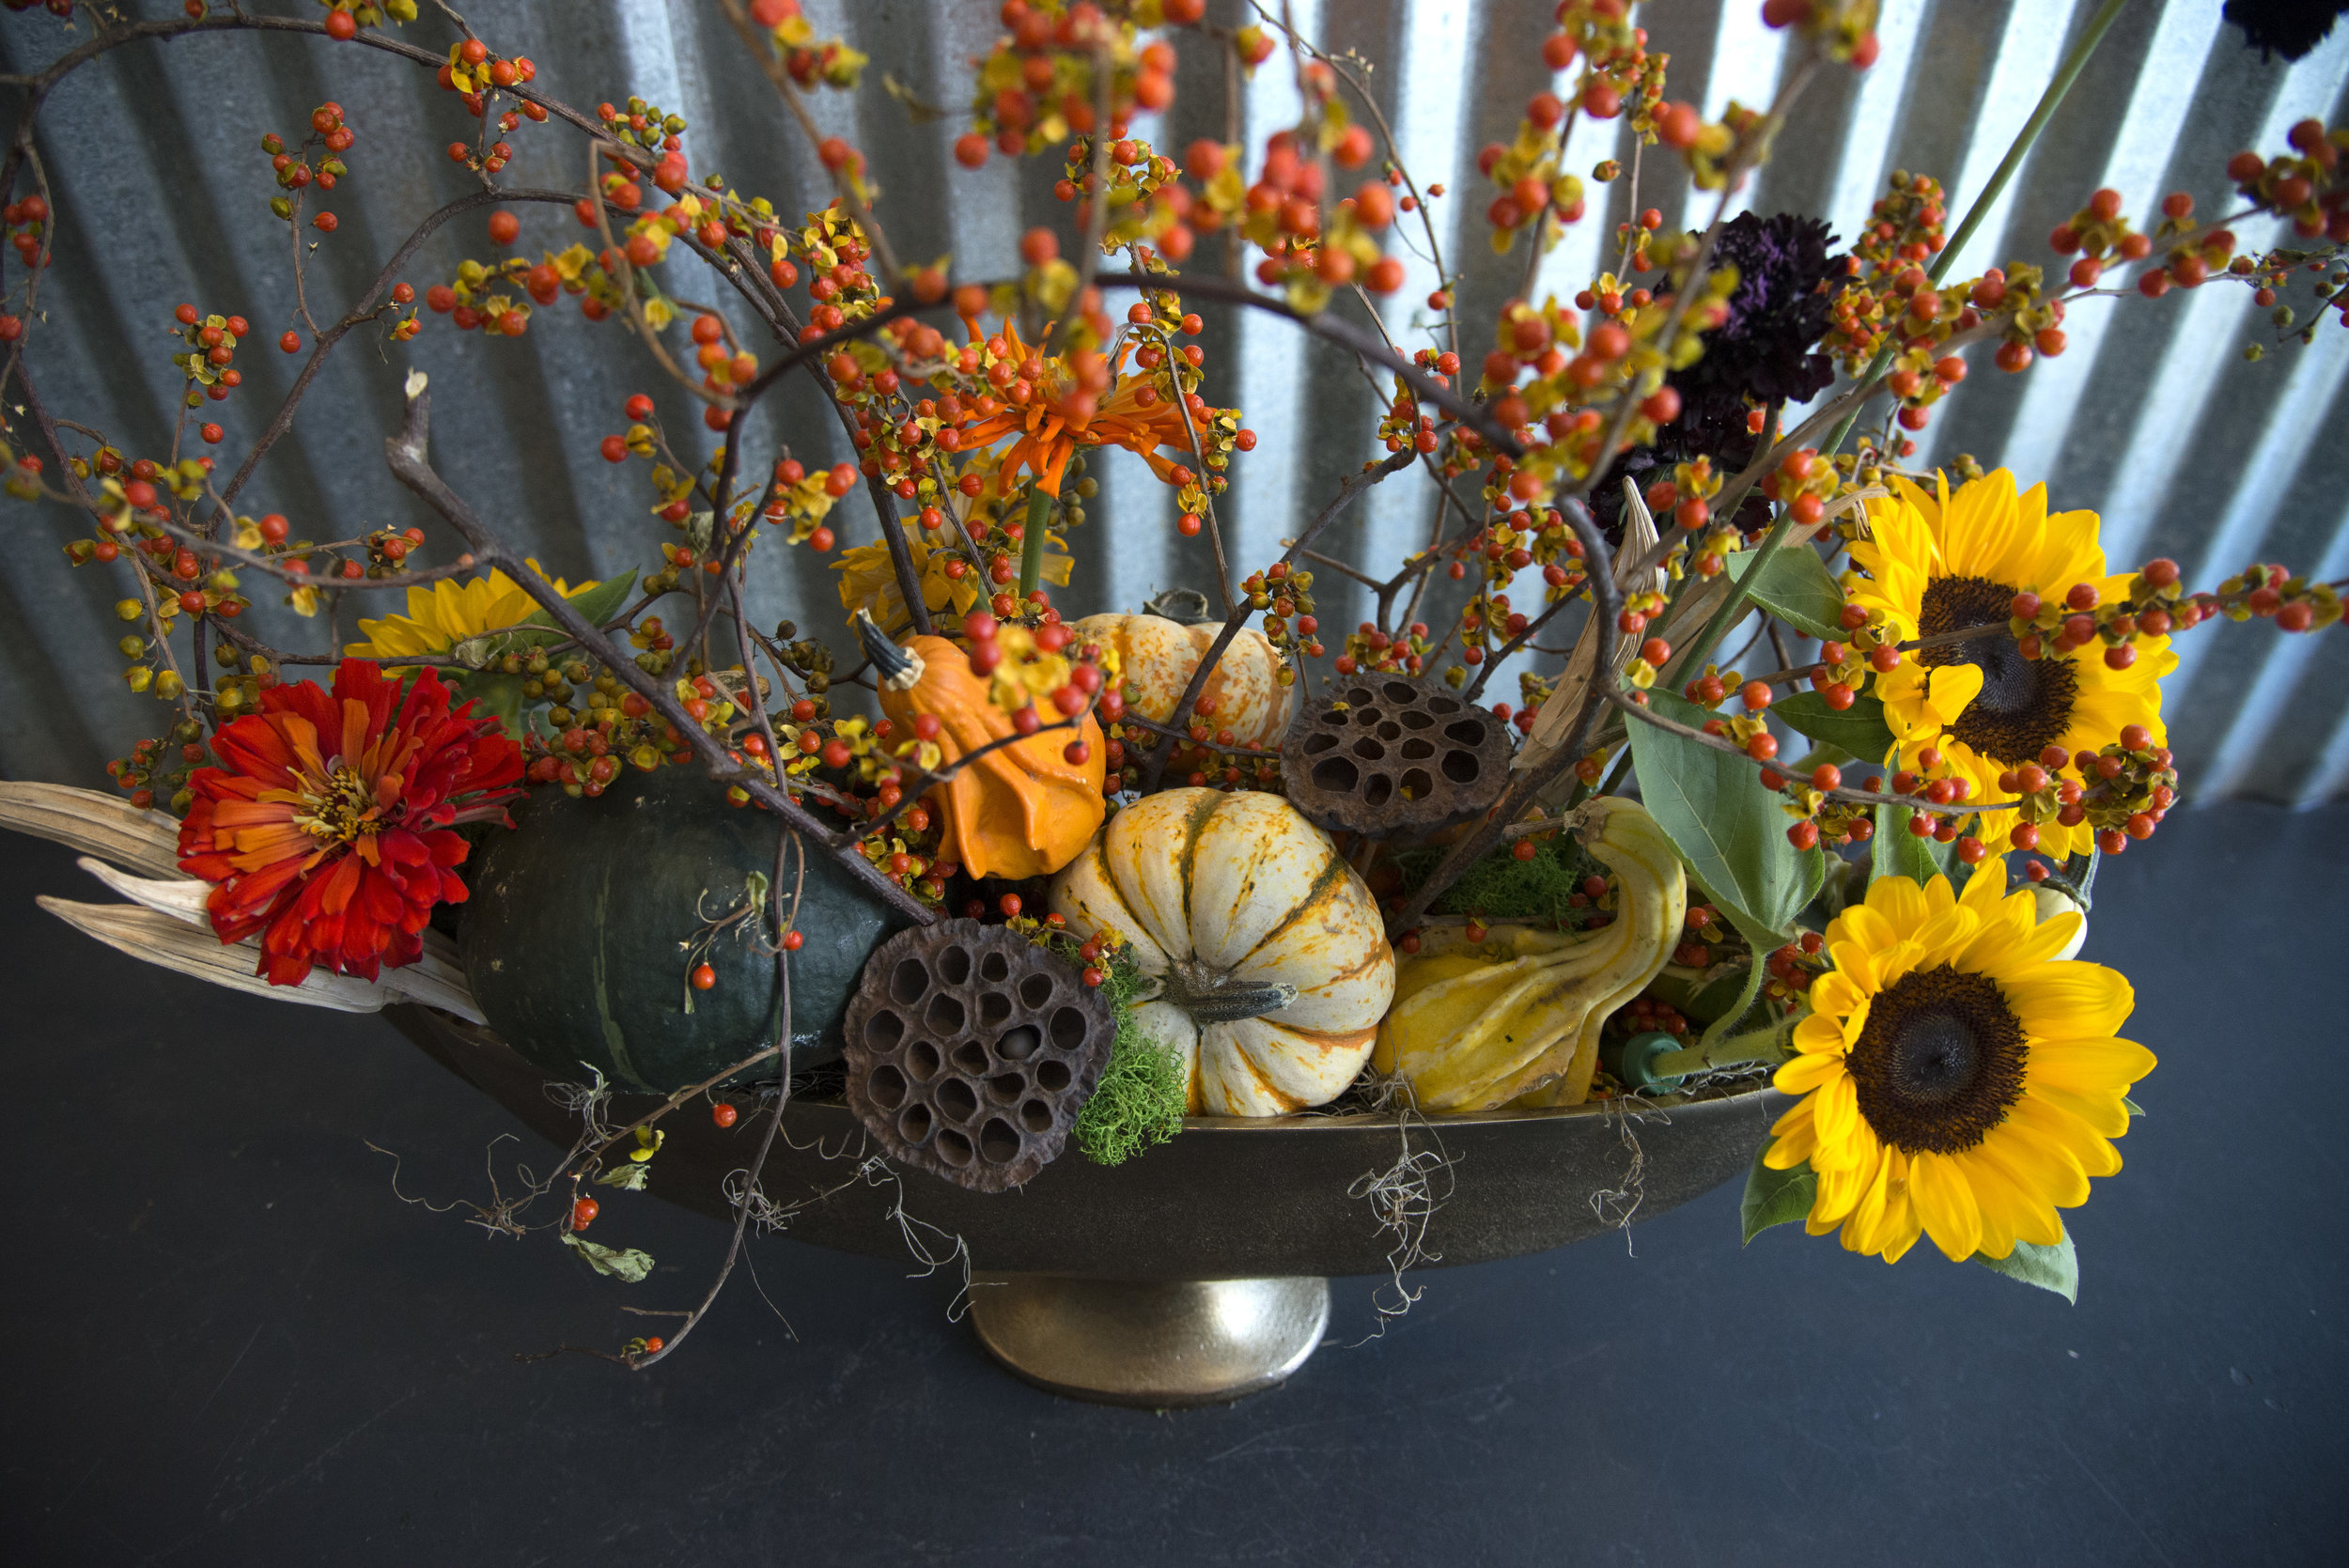 fall preserved basket with blooms mitchs flowers centerpiece denys mertz.jpg